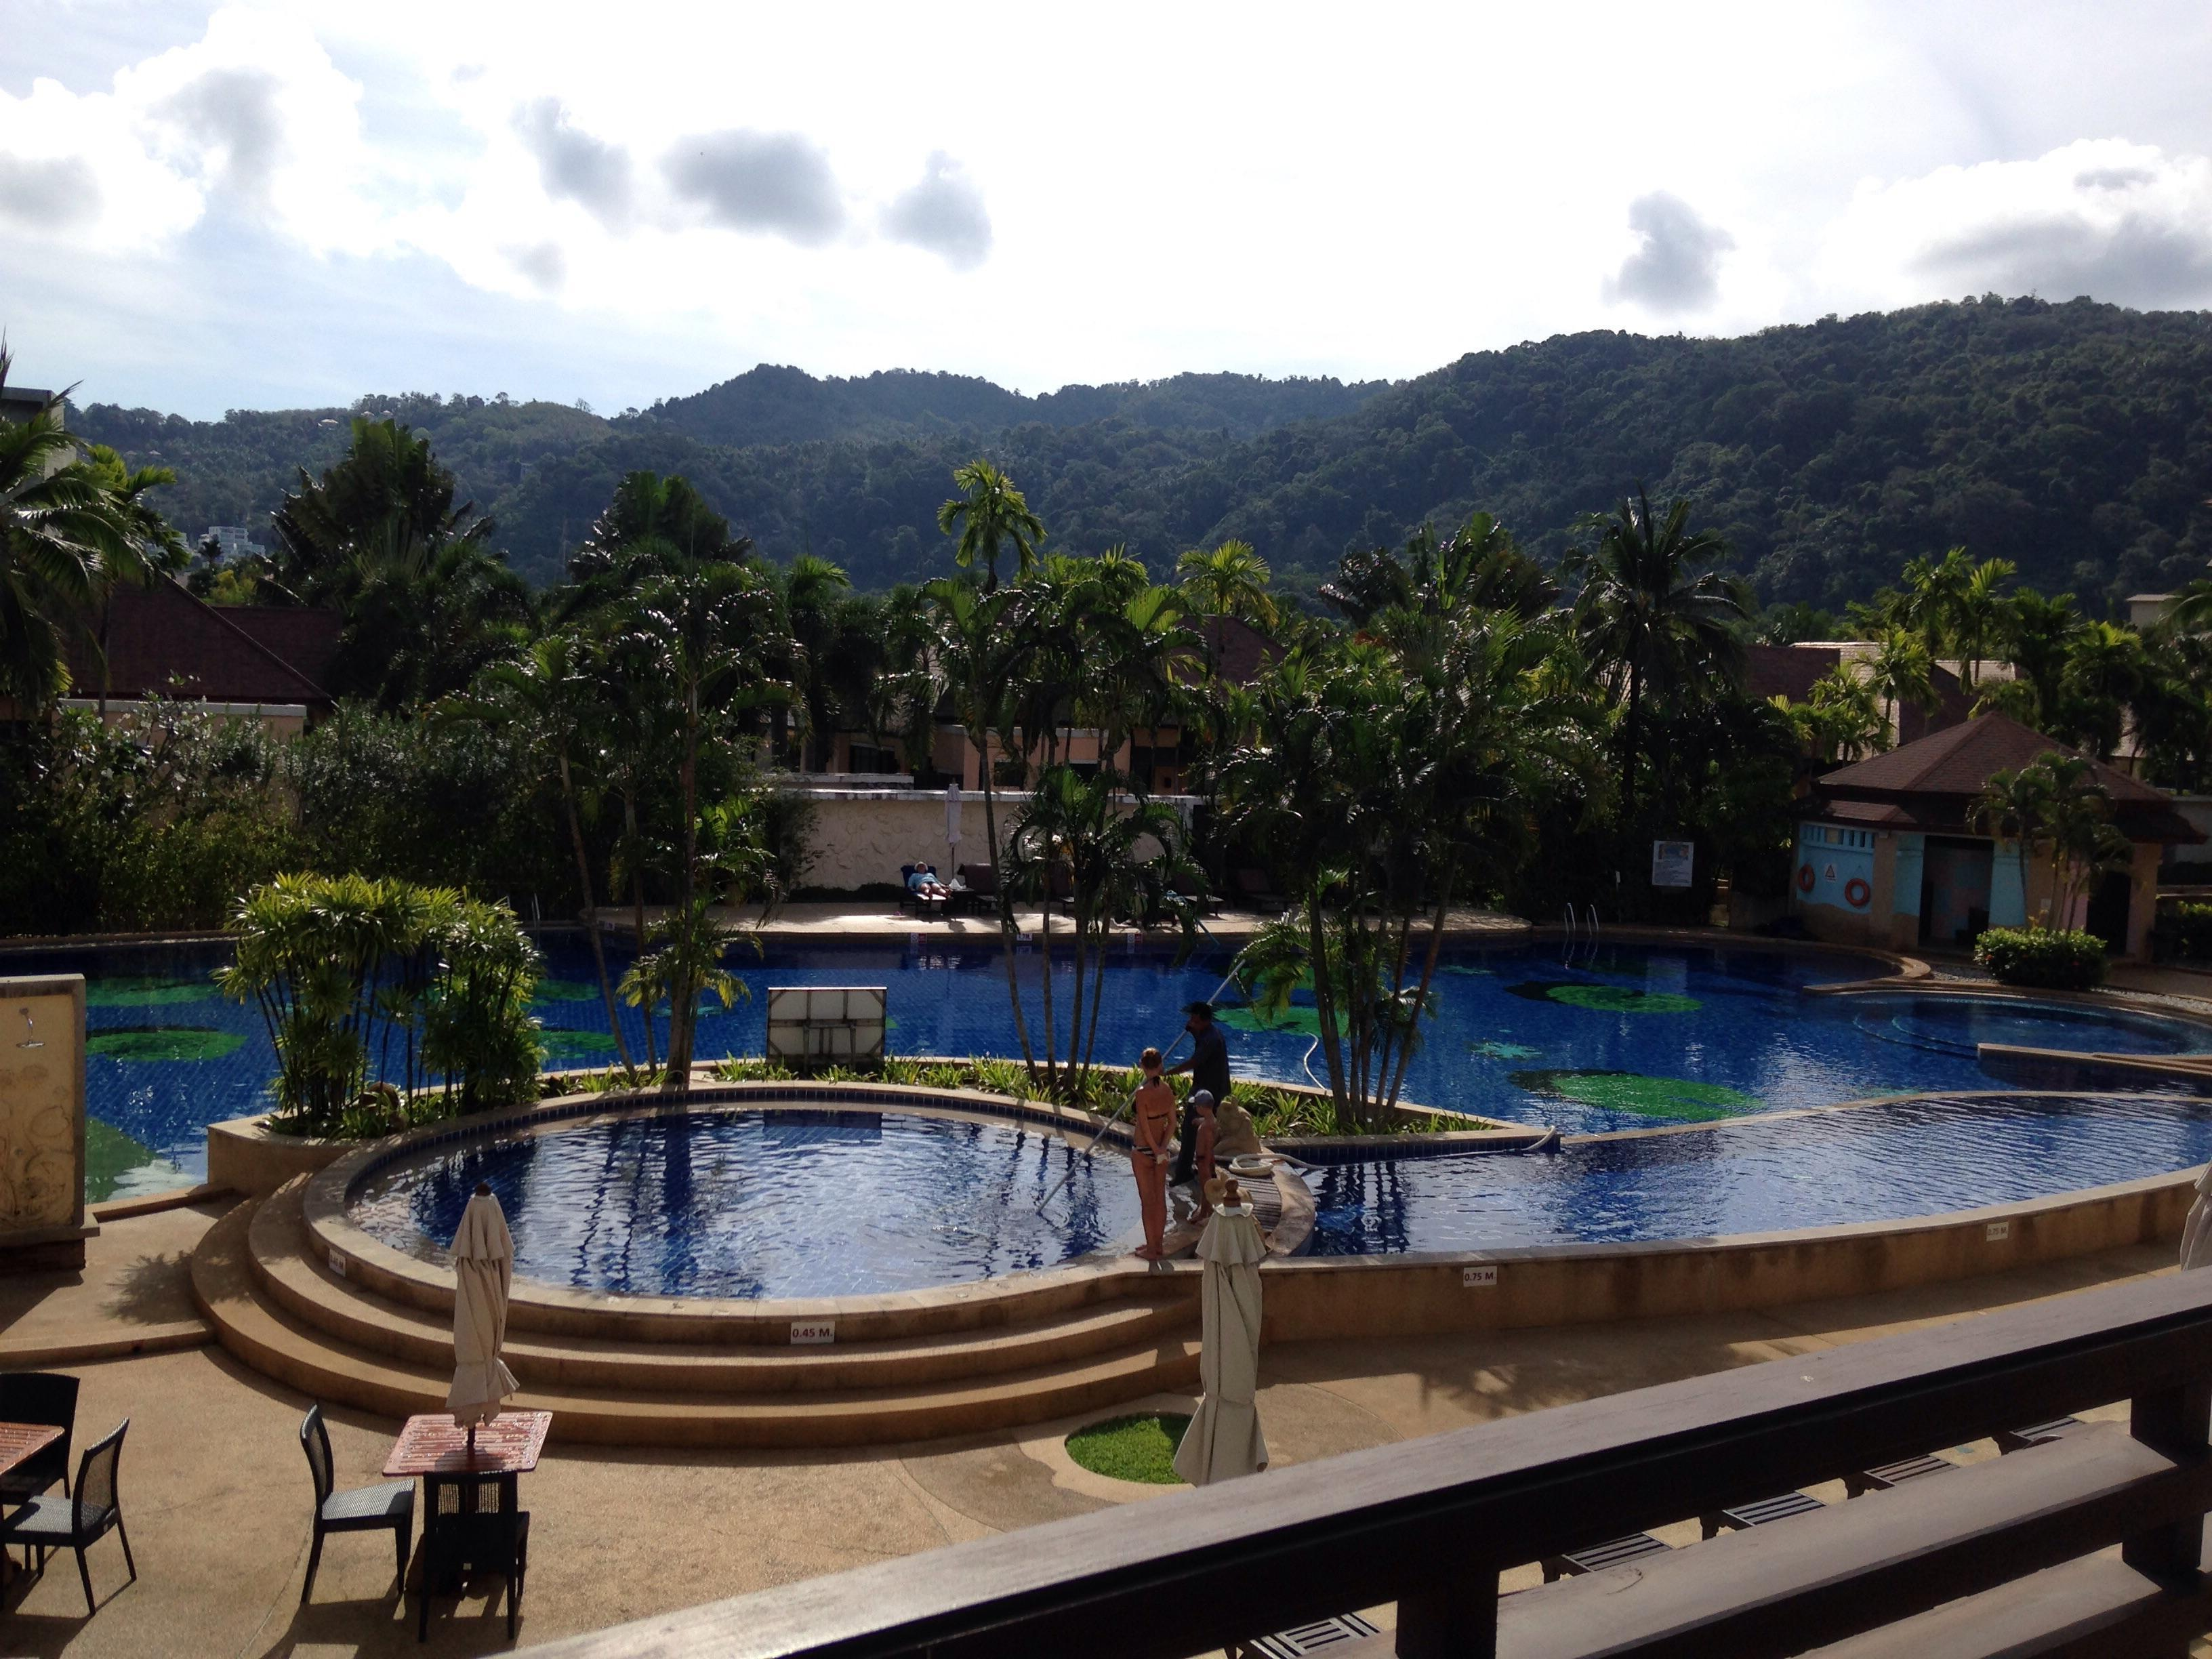 Awesome Good Location , Loads Of Restaurants, Bars And Shops On Your Doorstep But  Not At All Noisy. Good Spacious Pool Area With 4 Different Pool Depths.